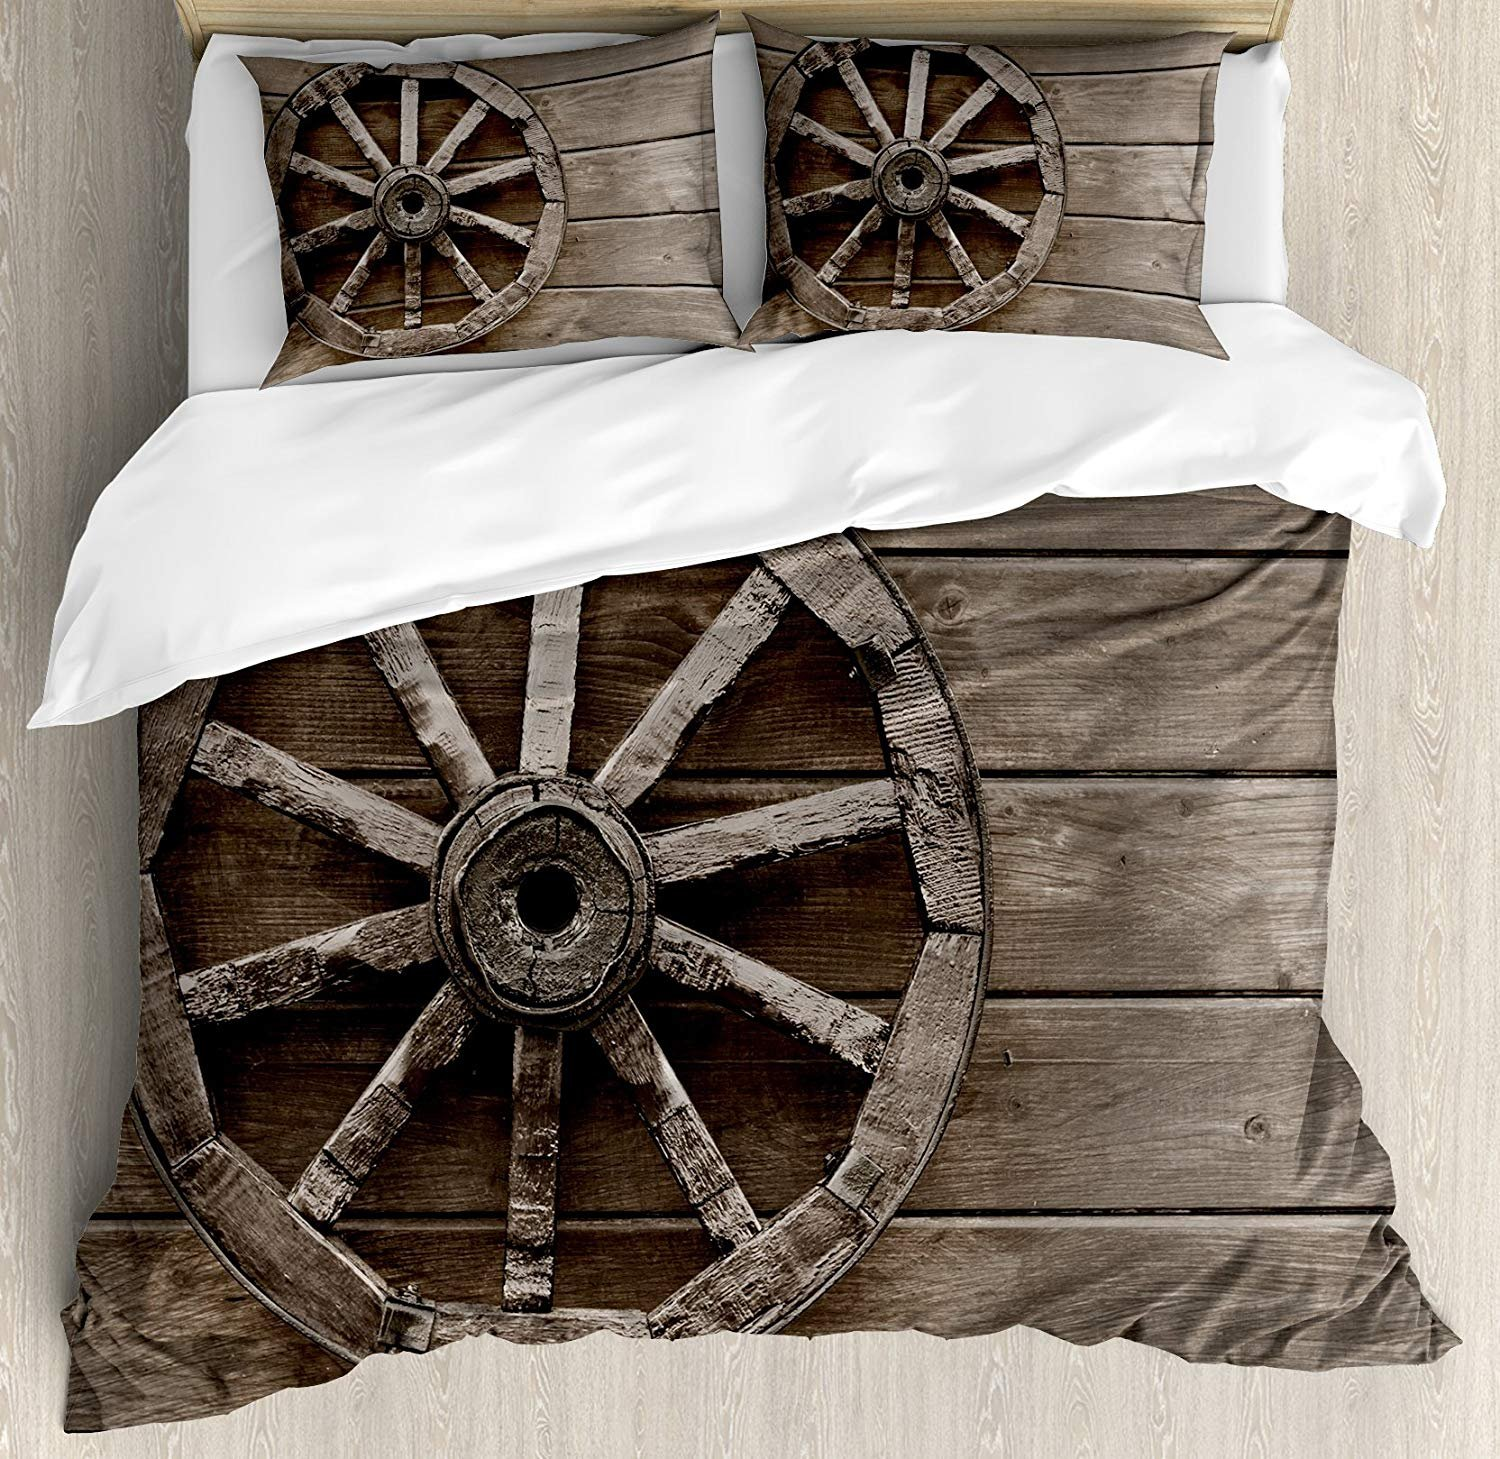 Duvet Cover Set Barn Wood Wagon Wheel Antique Aged Carriage Vehicle Wheel on The Wall of Barn Grunge Western Ultra Soft Durable Twill Plush 4 Pcs Bedding Sets for Kids/Teens/Adults Twin Size